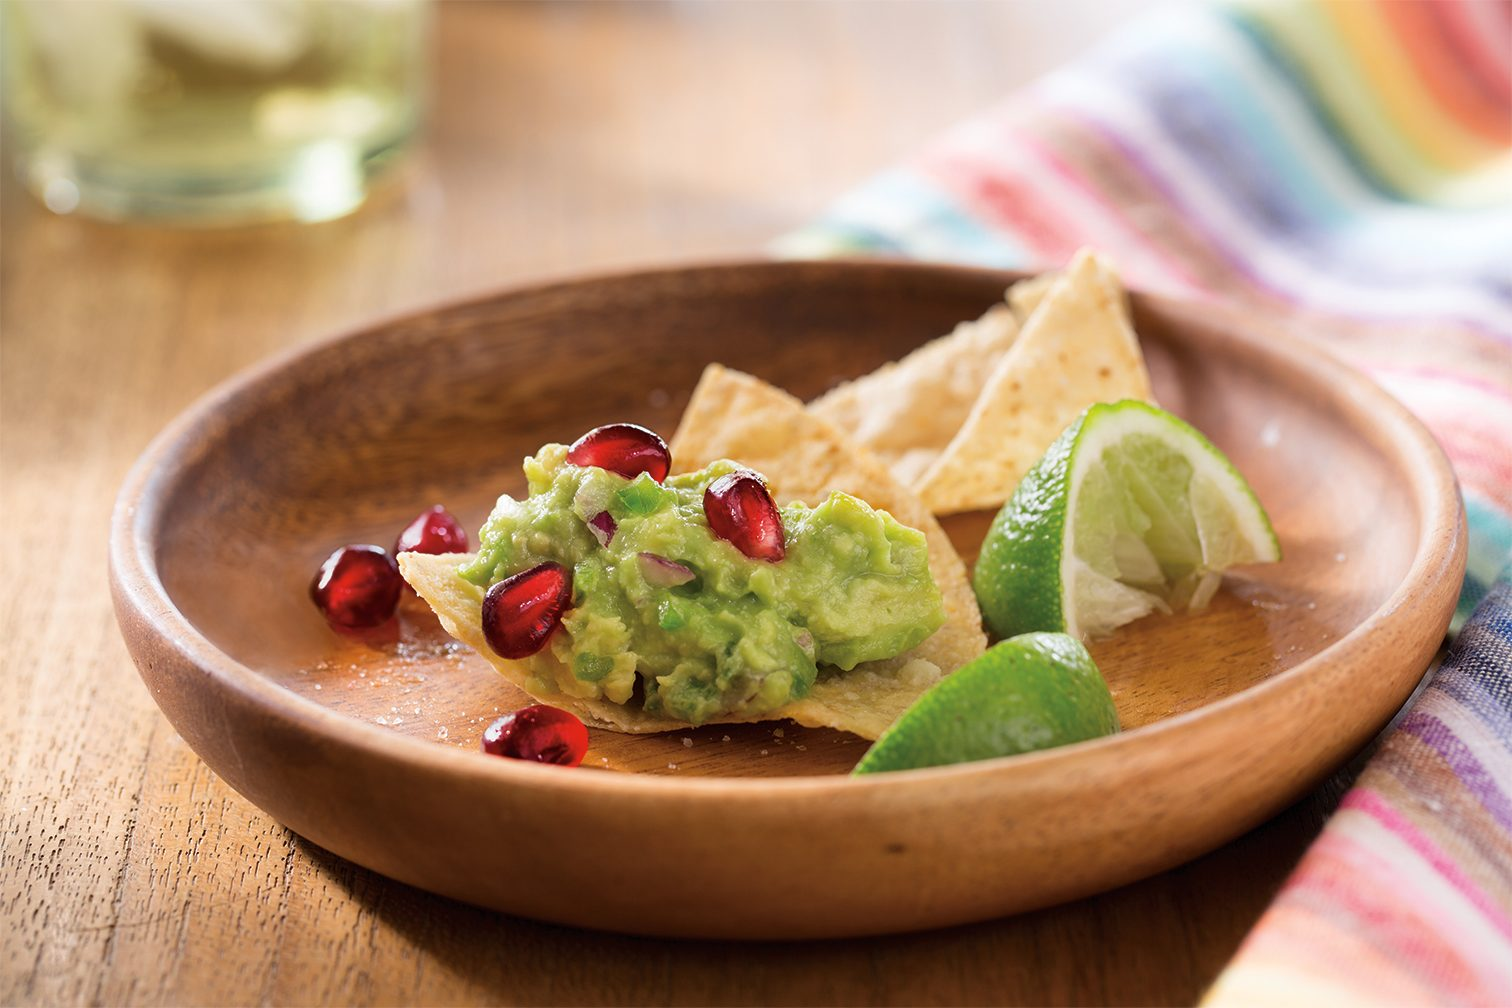 Celebrate Cinco de Mayo with These Healthier Food and Drink Recipes